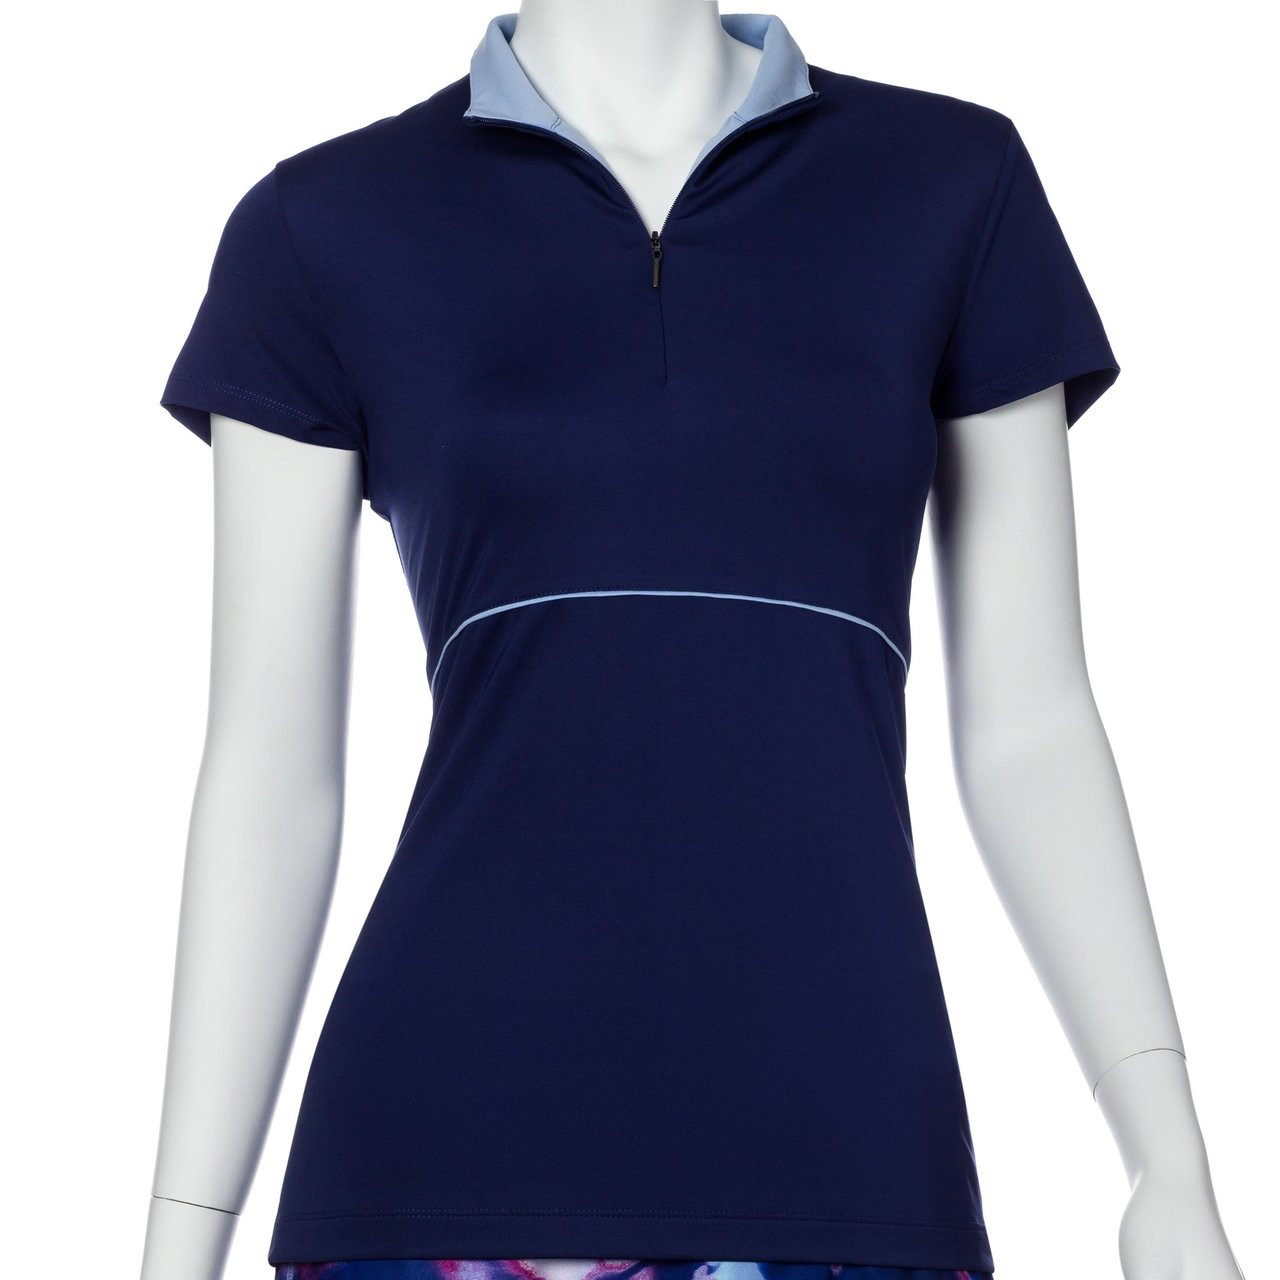 EP Pro NY Cap Sleeve Piping Trim Convertible Zip Collar Women s Golf Shirt 3c2df88161